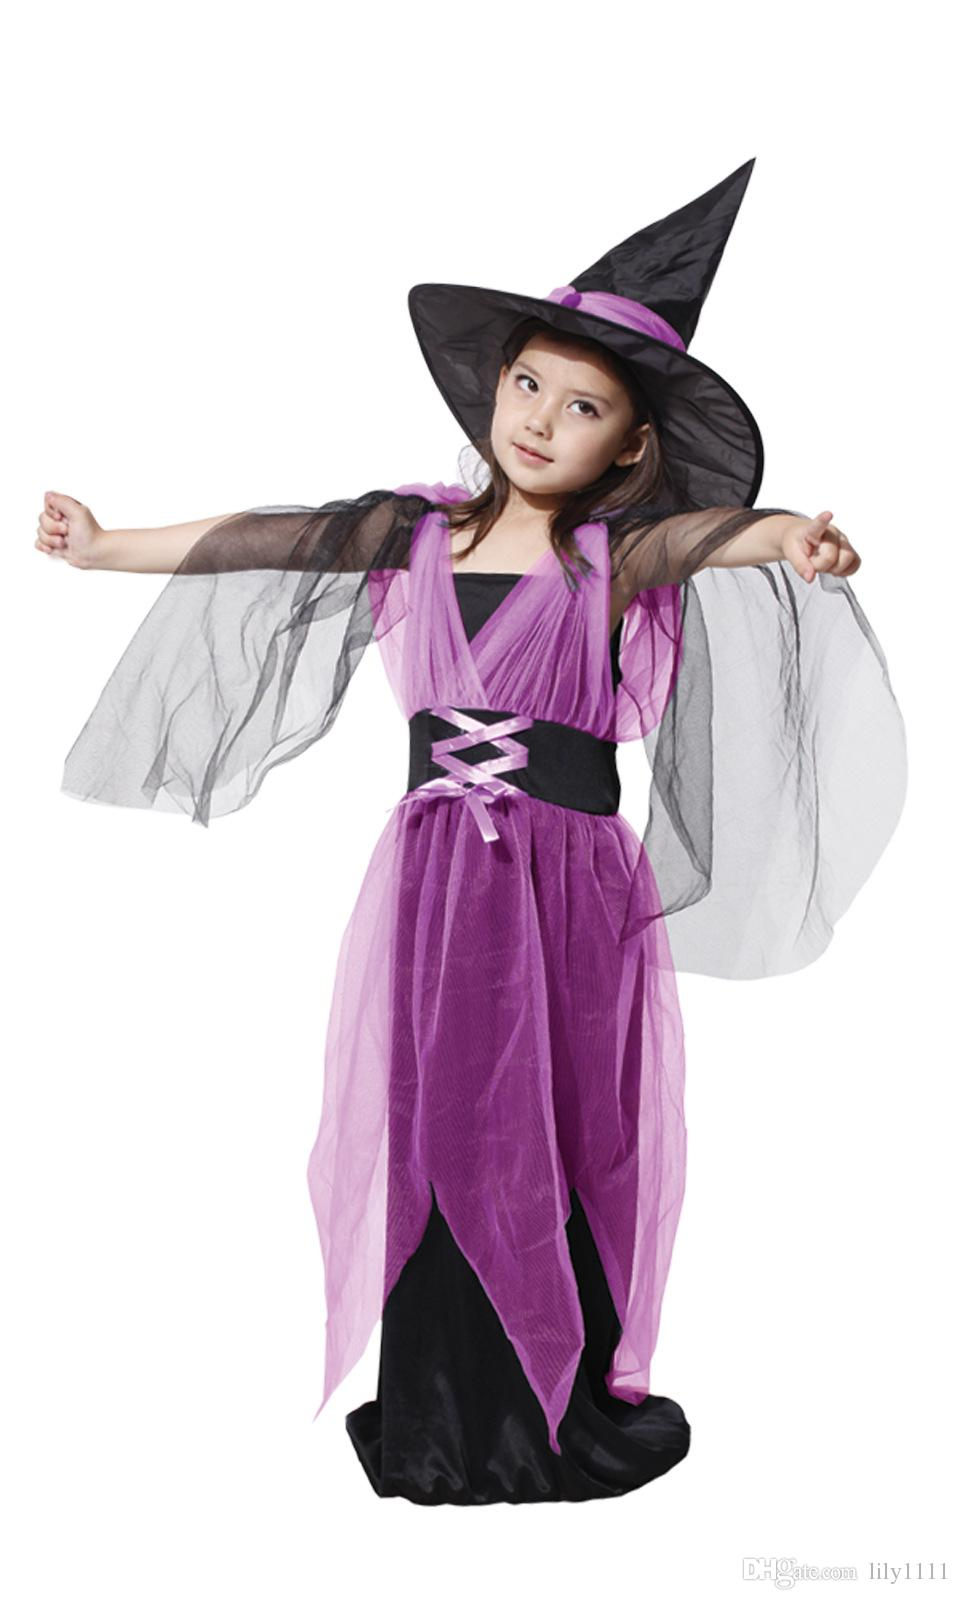 Shanghai Story Kids Halloween Kids Costumes Hat For Girls Witch Purple Children Suit Carnival Lovely Witch Clothes Adult Group Halloween Costumes Costumes For Groups Of 3 From Lily1111 15 44 Dhgate Com